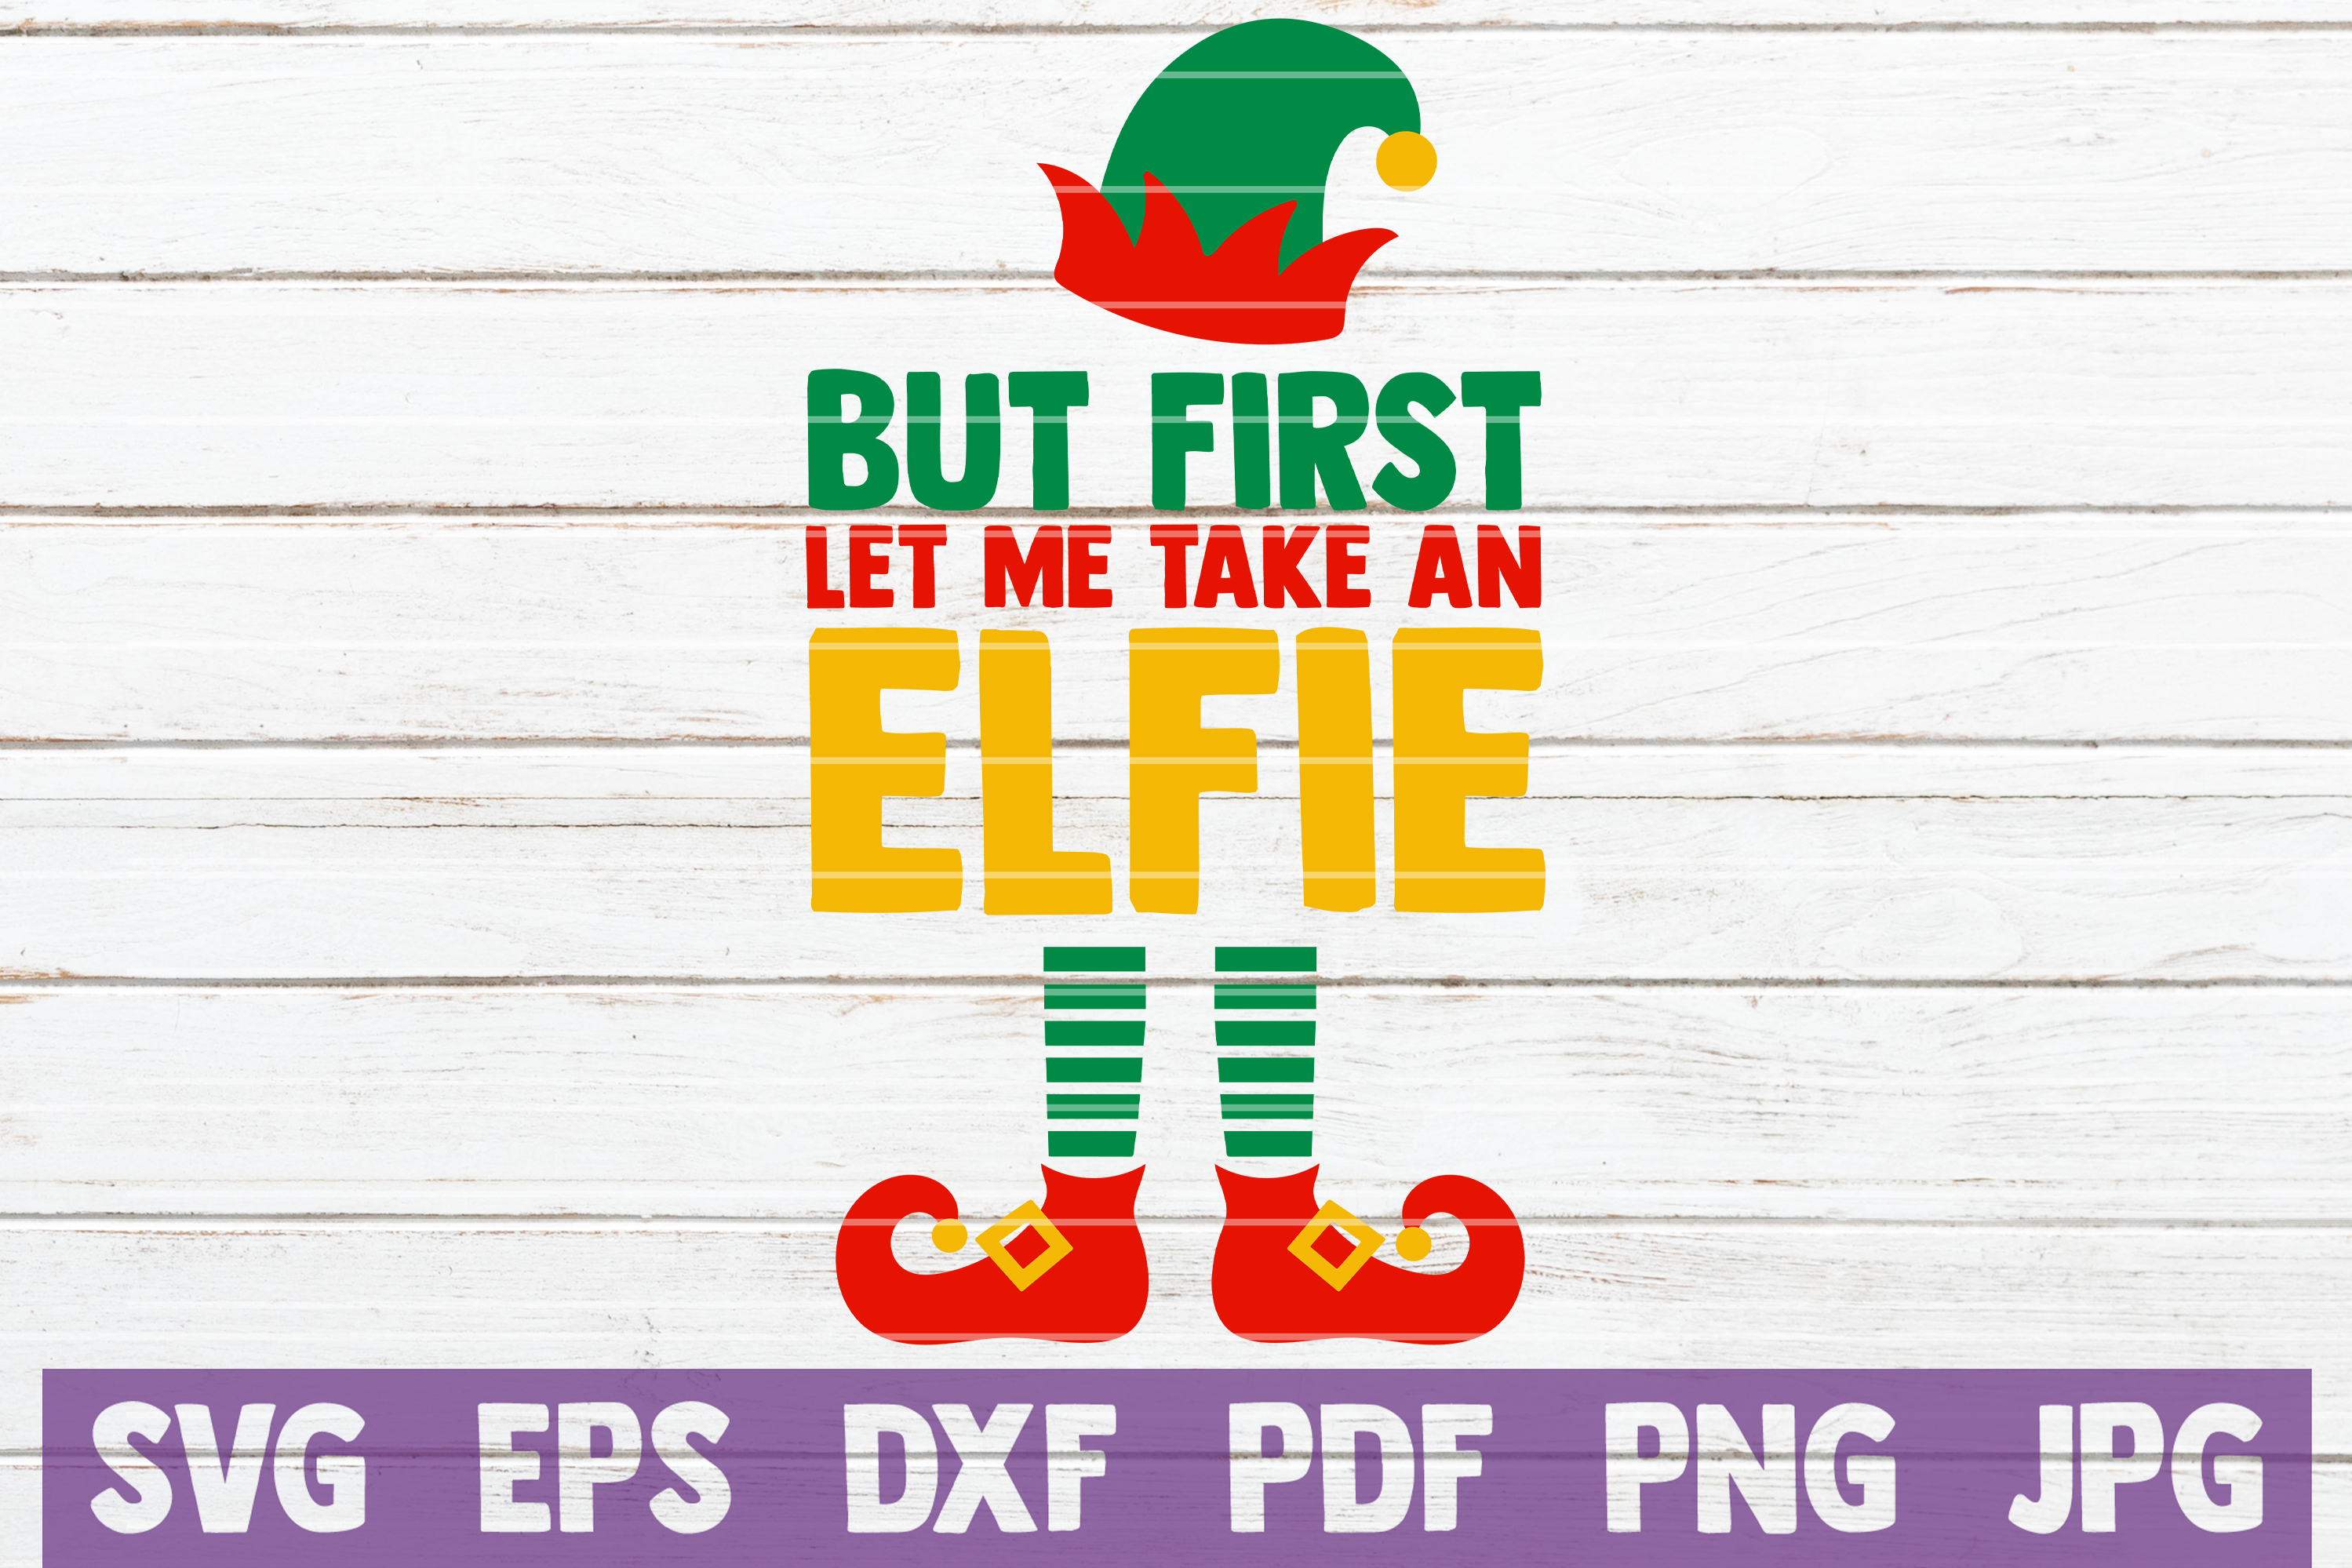 But First Let Me Take An Elfie SVG Cut File example image 1